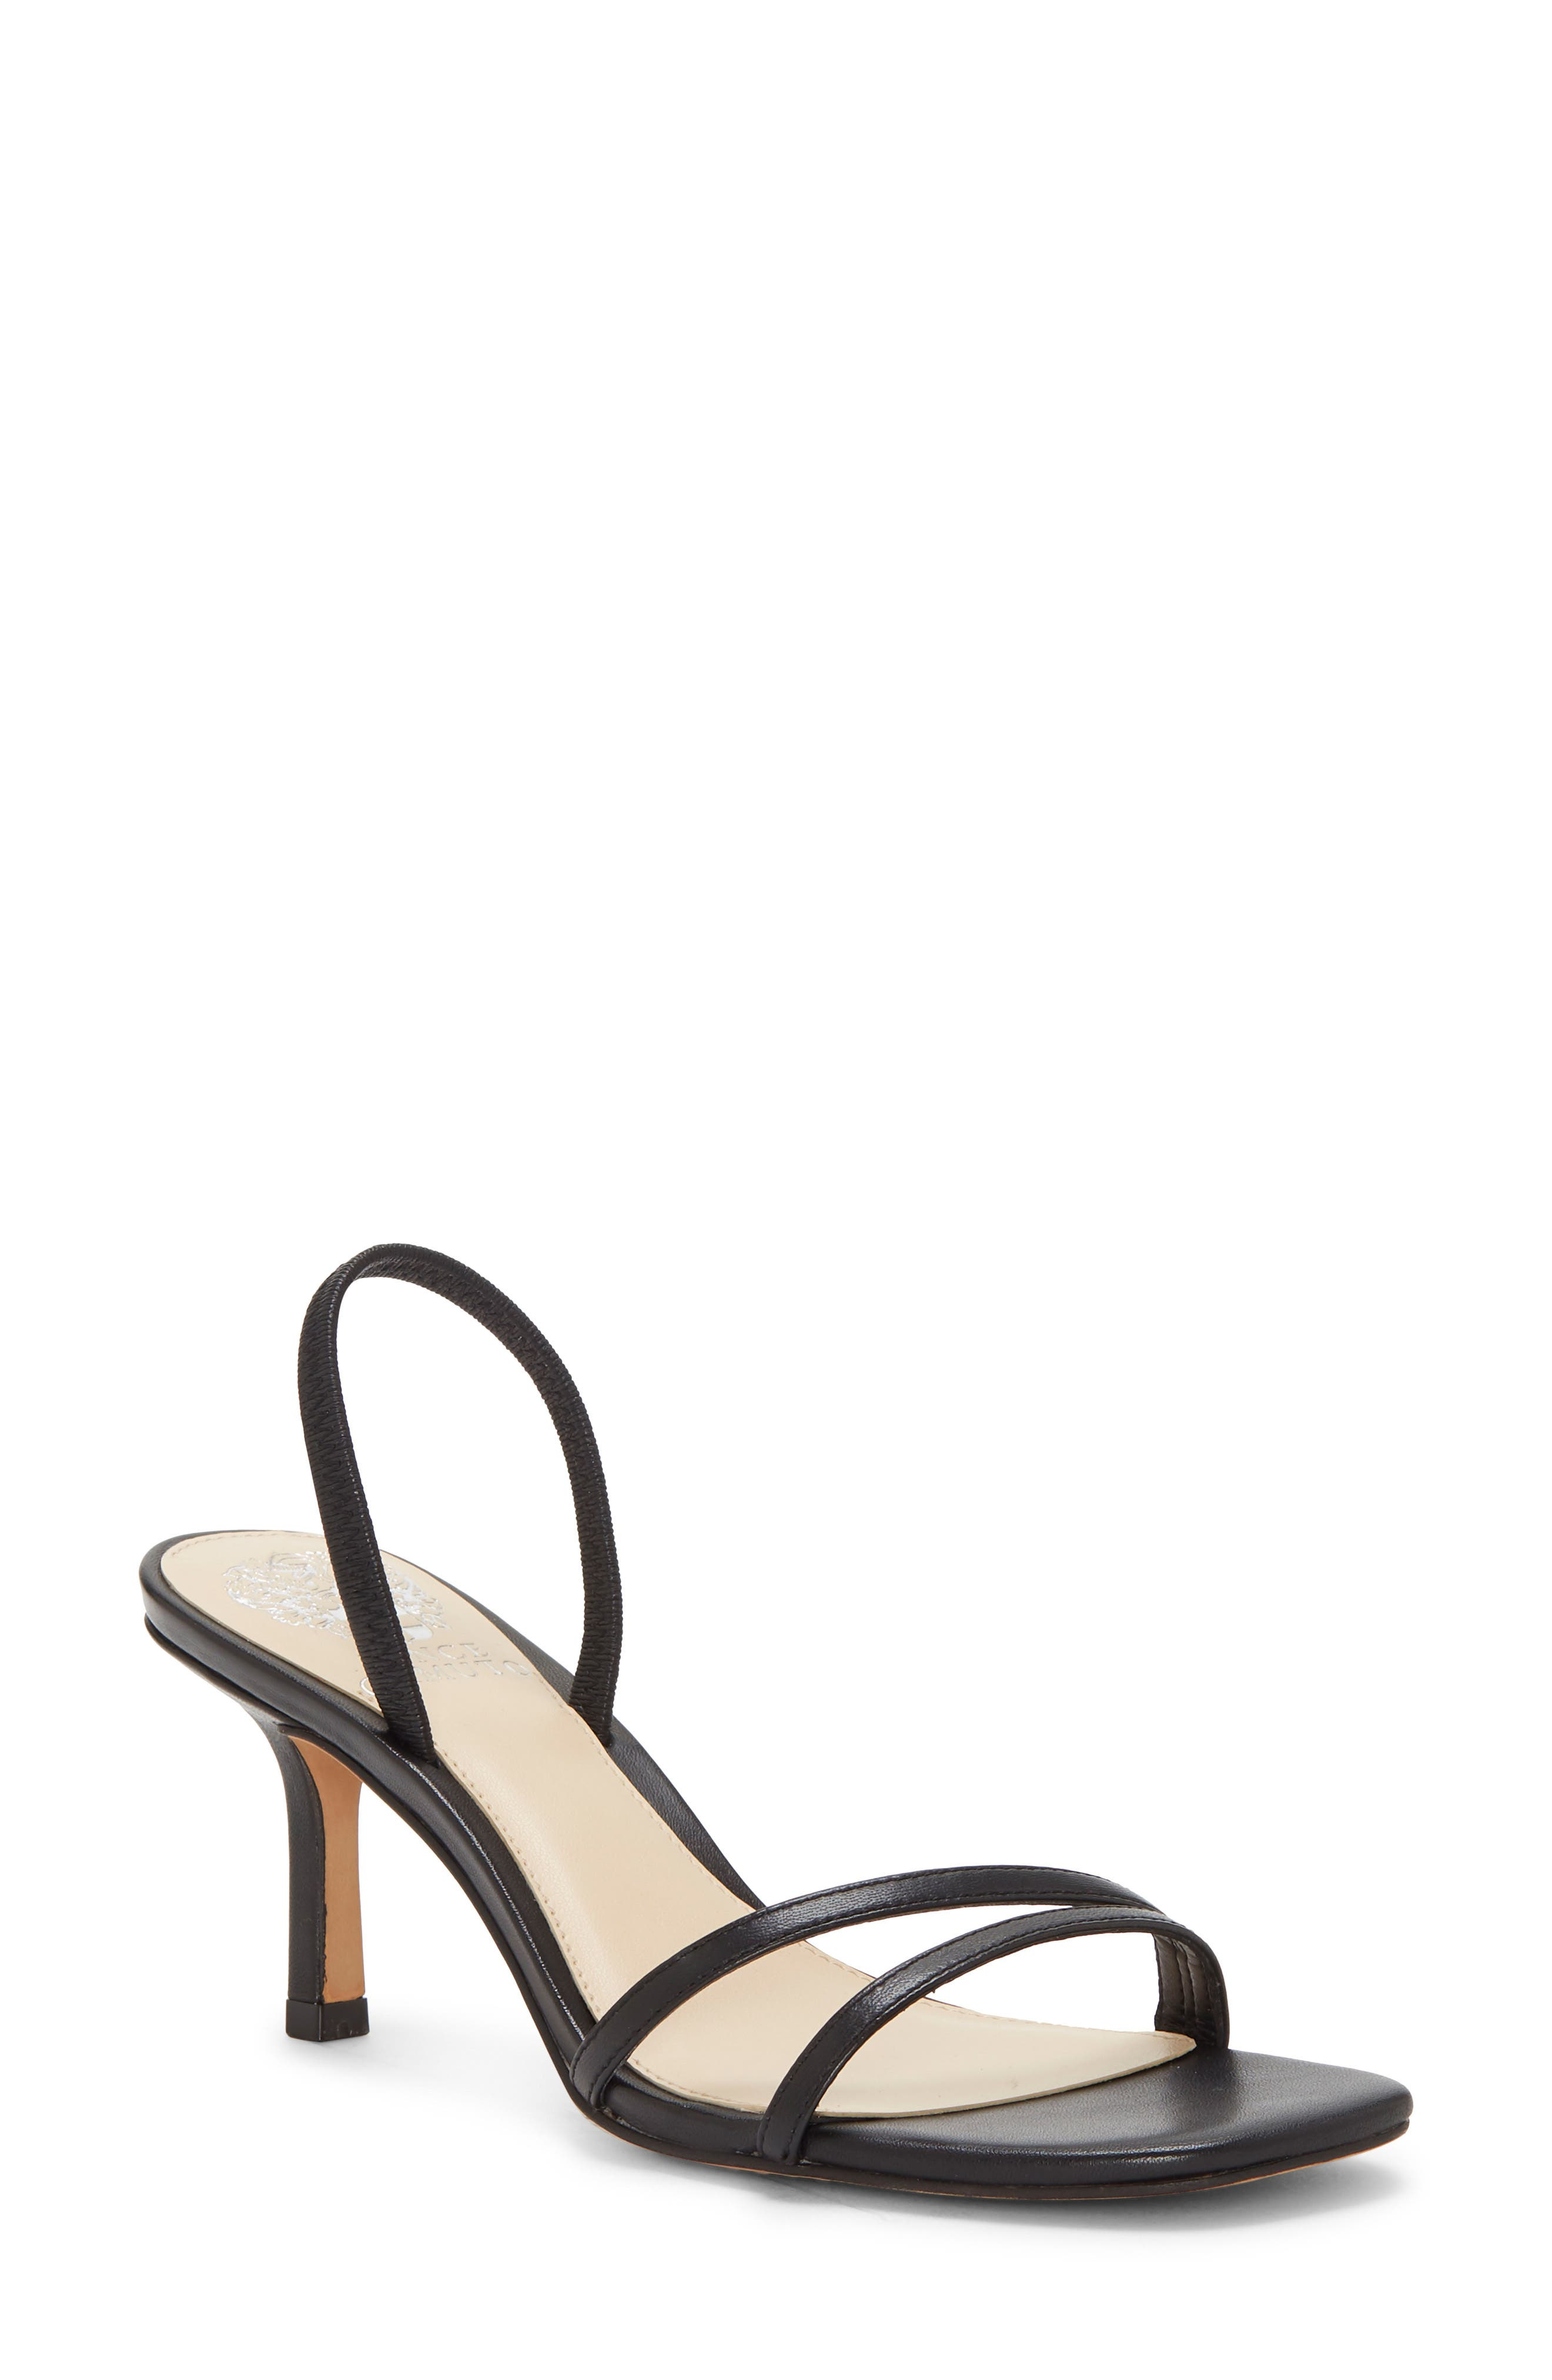 Slender straps make this sandal a graceful complement for any daytime or evening look. Style Name: Vince Camuto Sheela Sandal (Women). Style Number: 5882165. Available in stores.